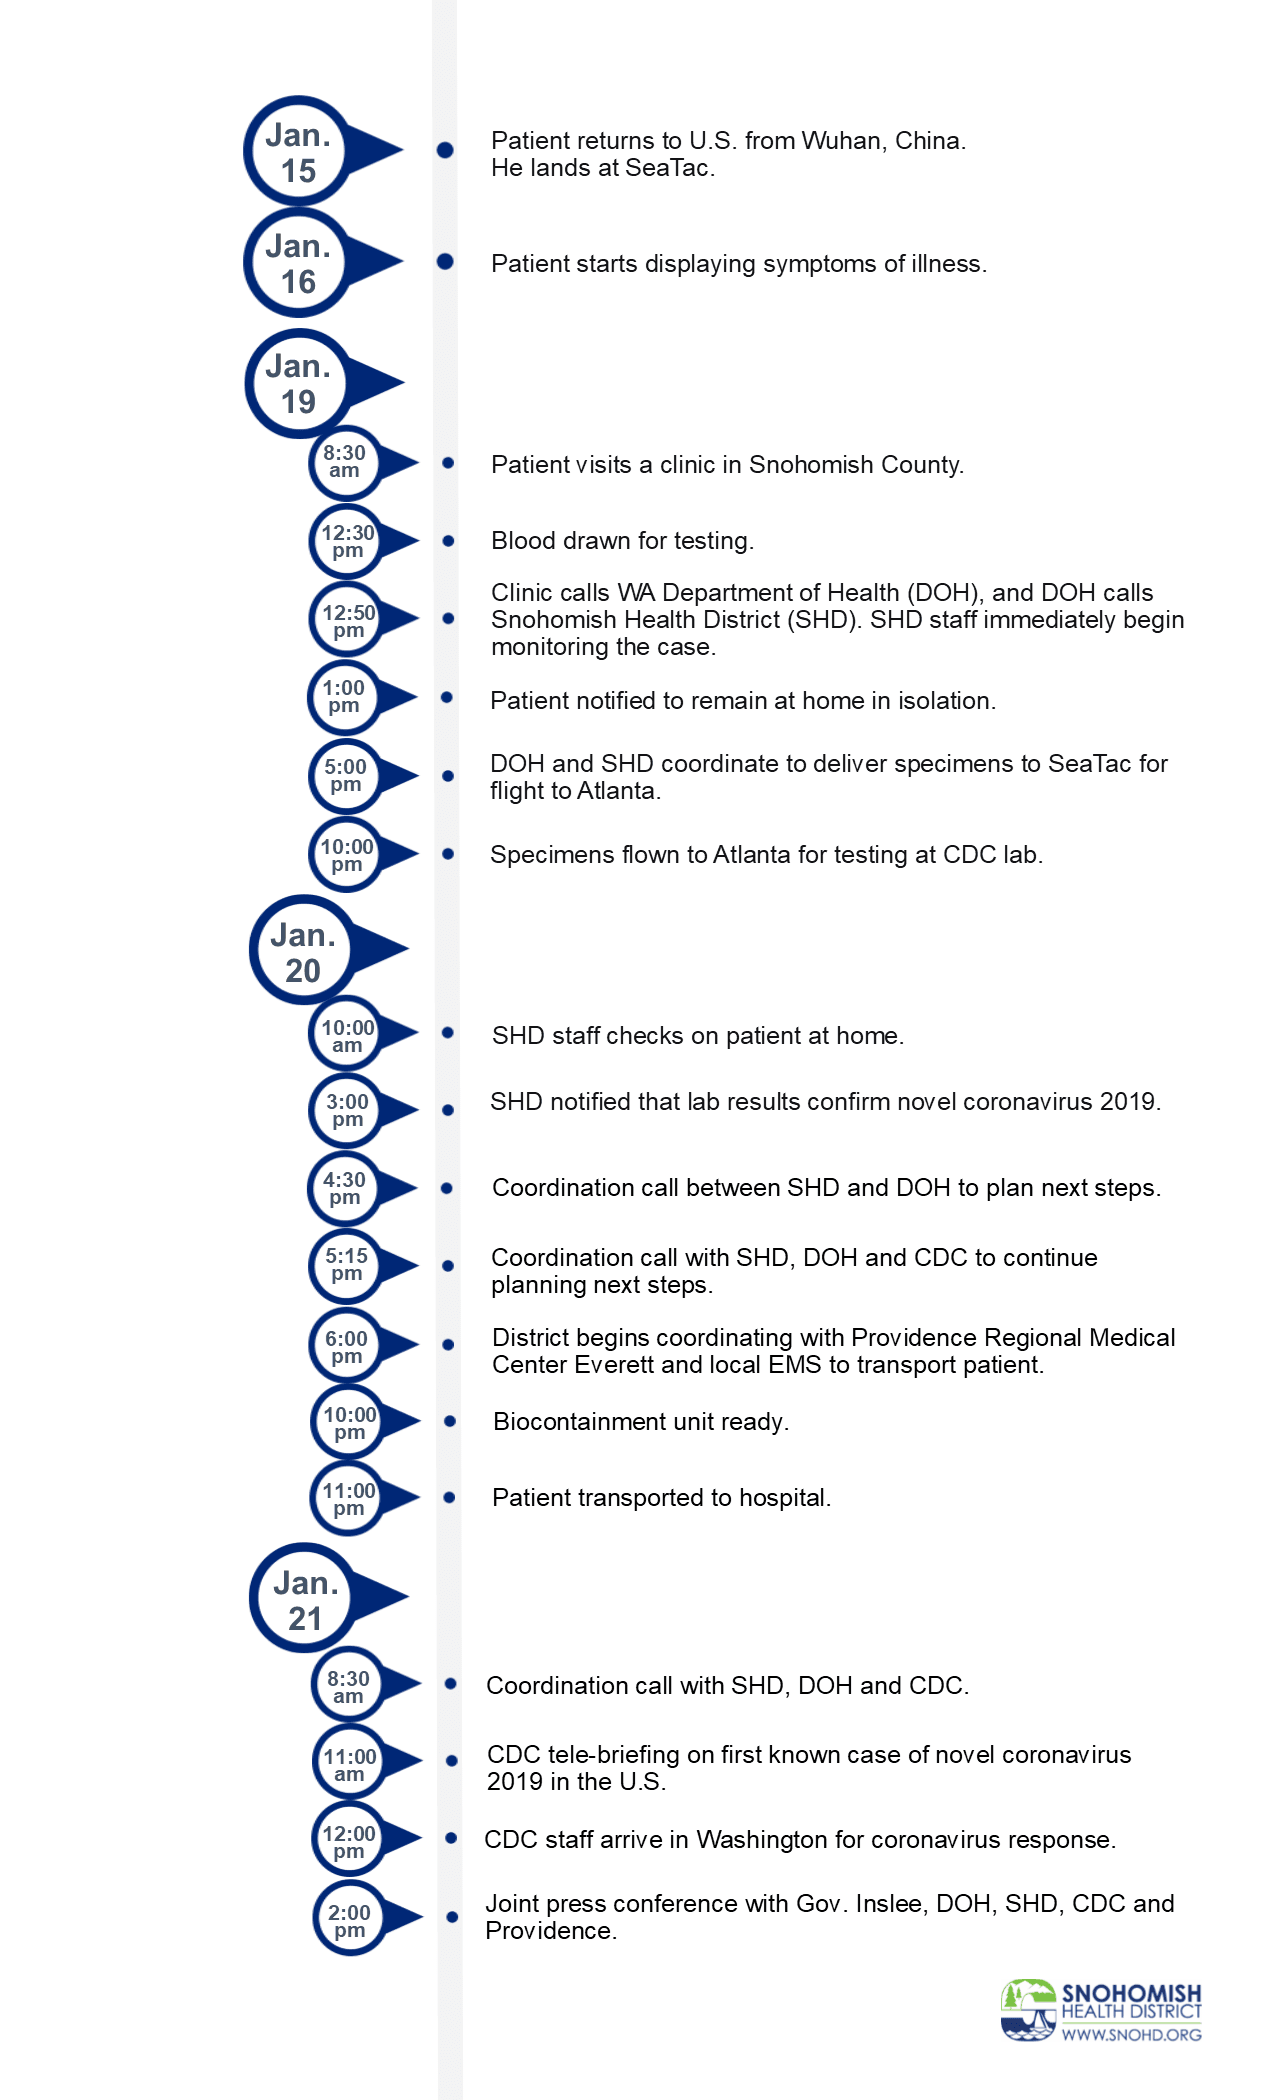 Timeline of response to novel coronavirus 2019